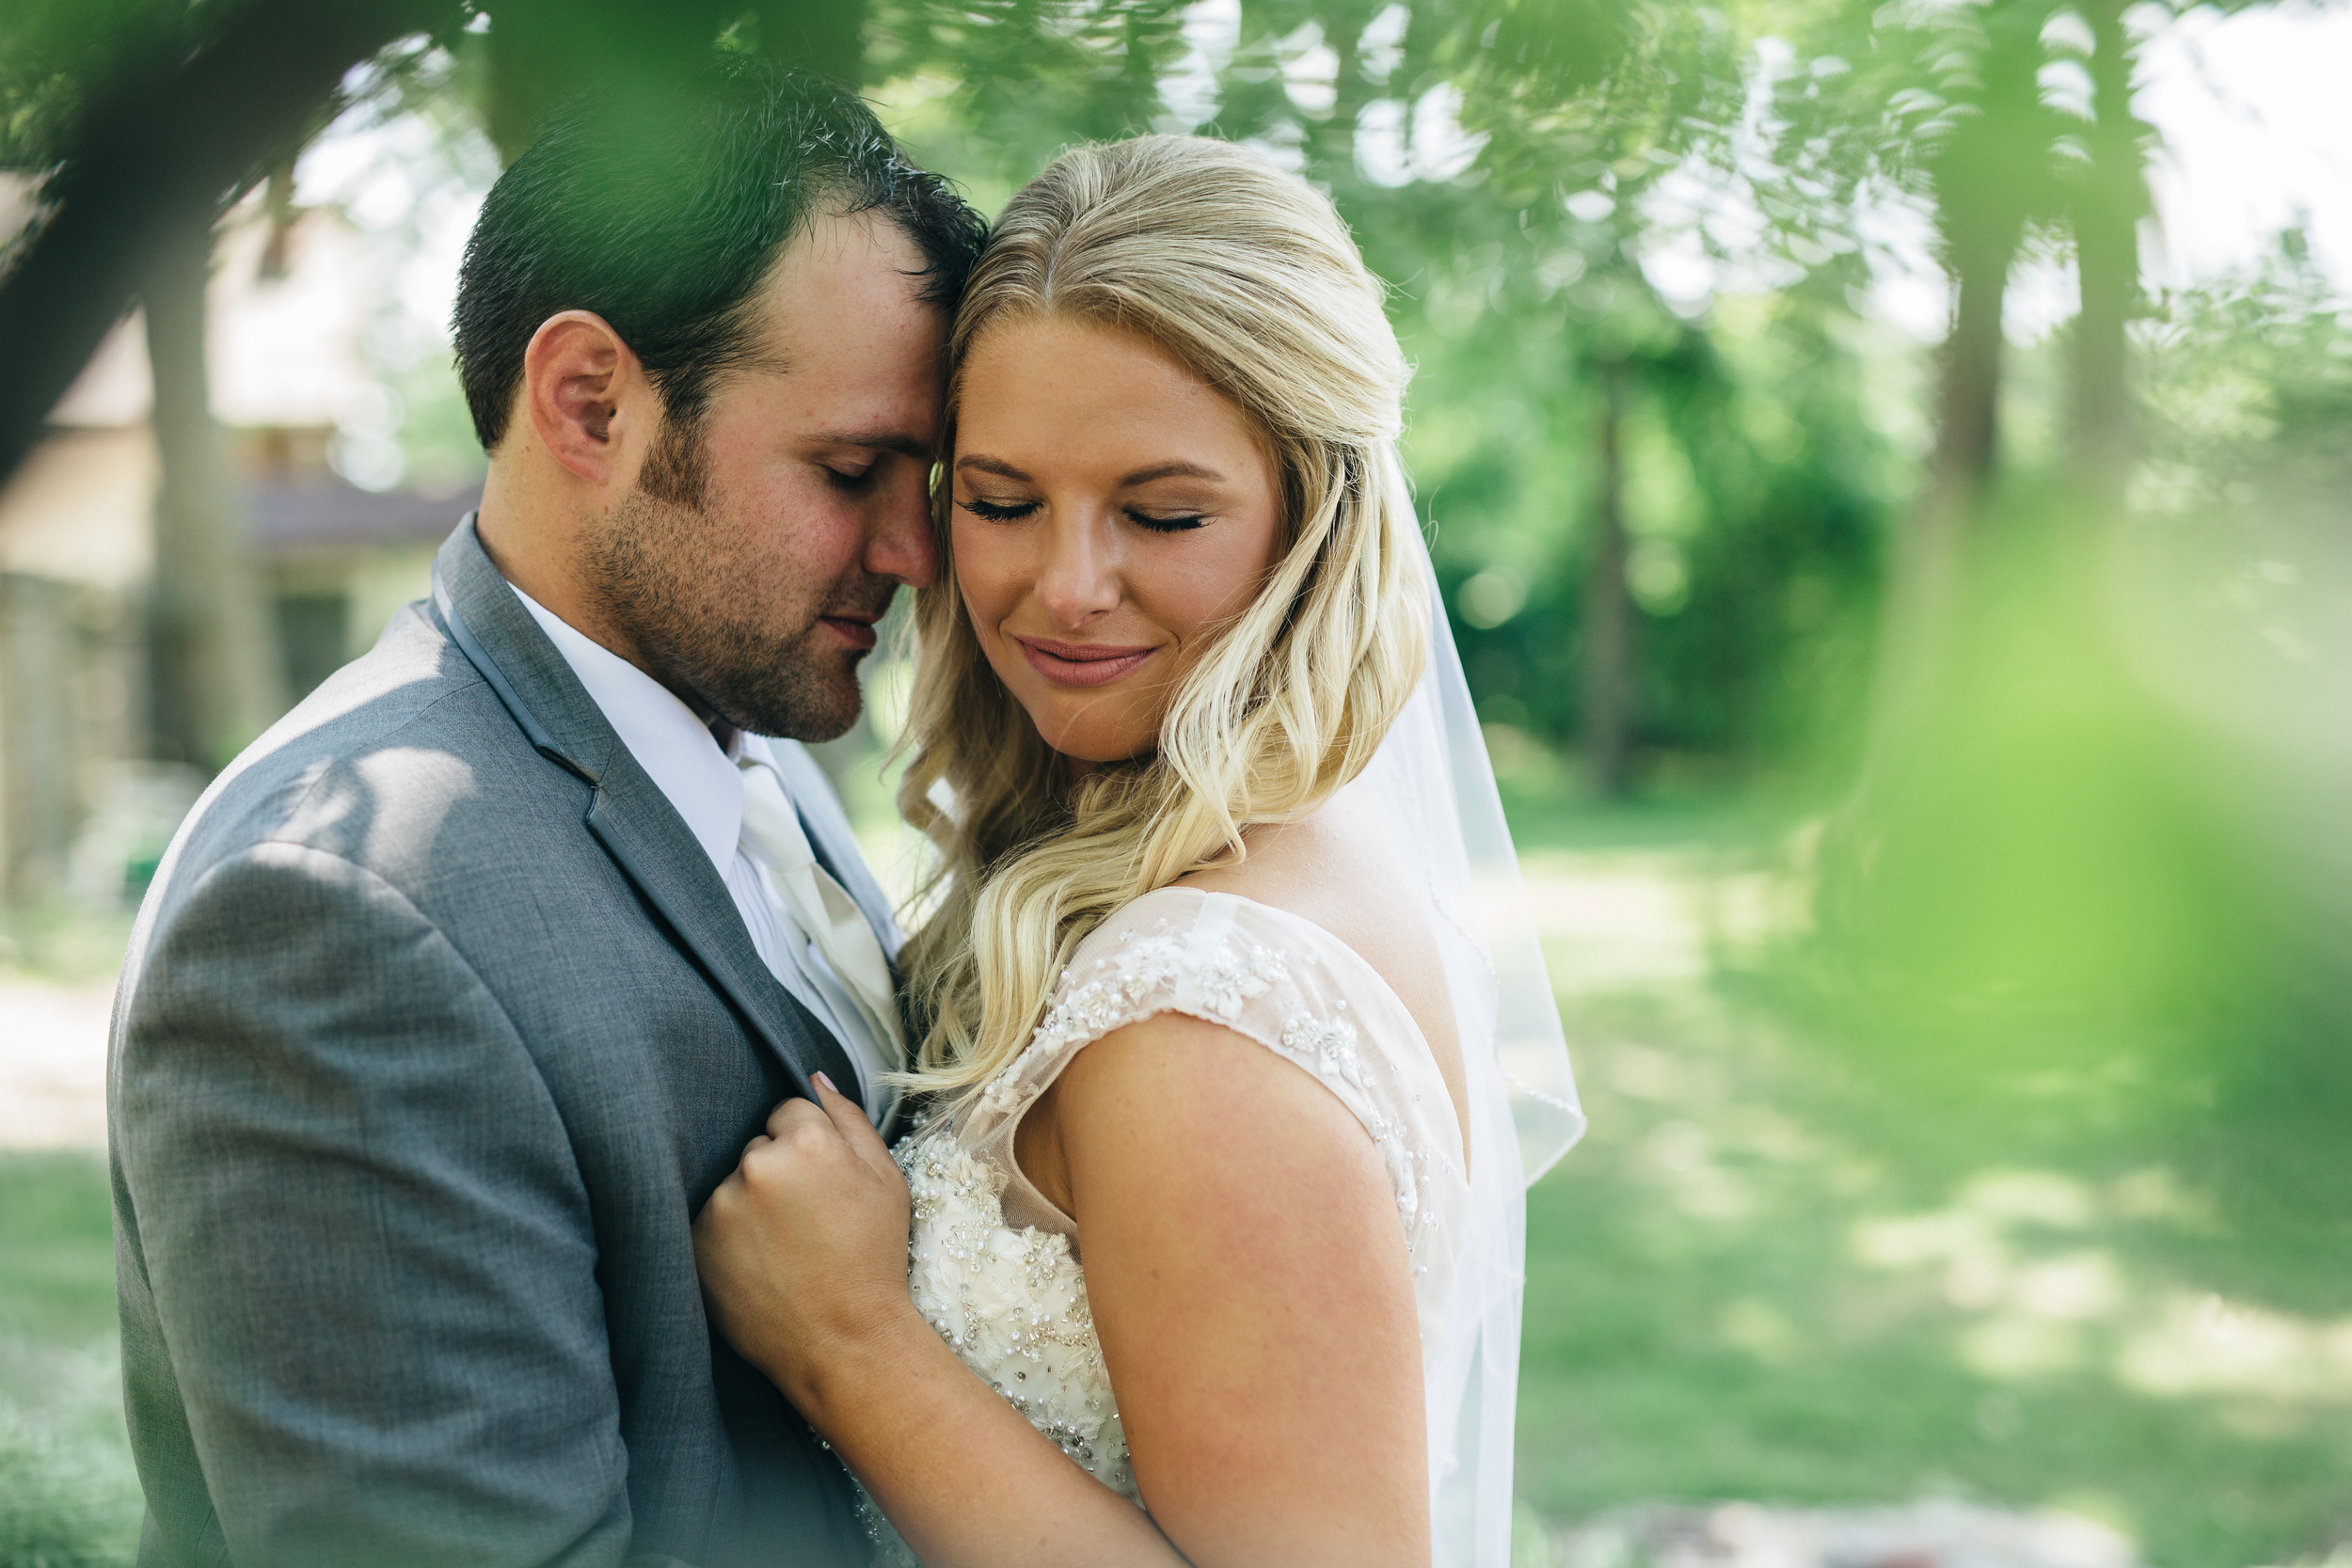 Bride and groom portraits during summer wedding at Oak Shade Grove.